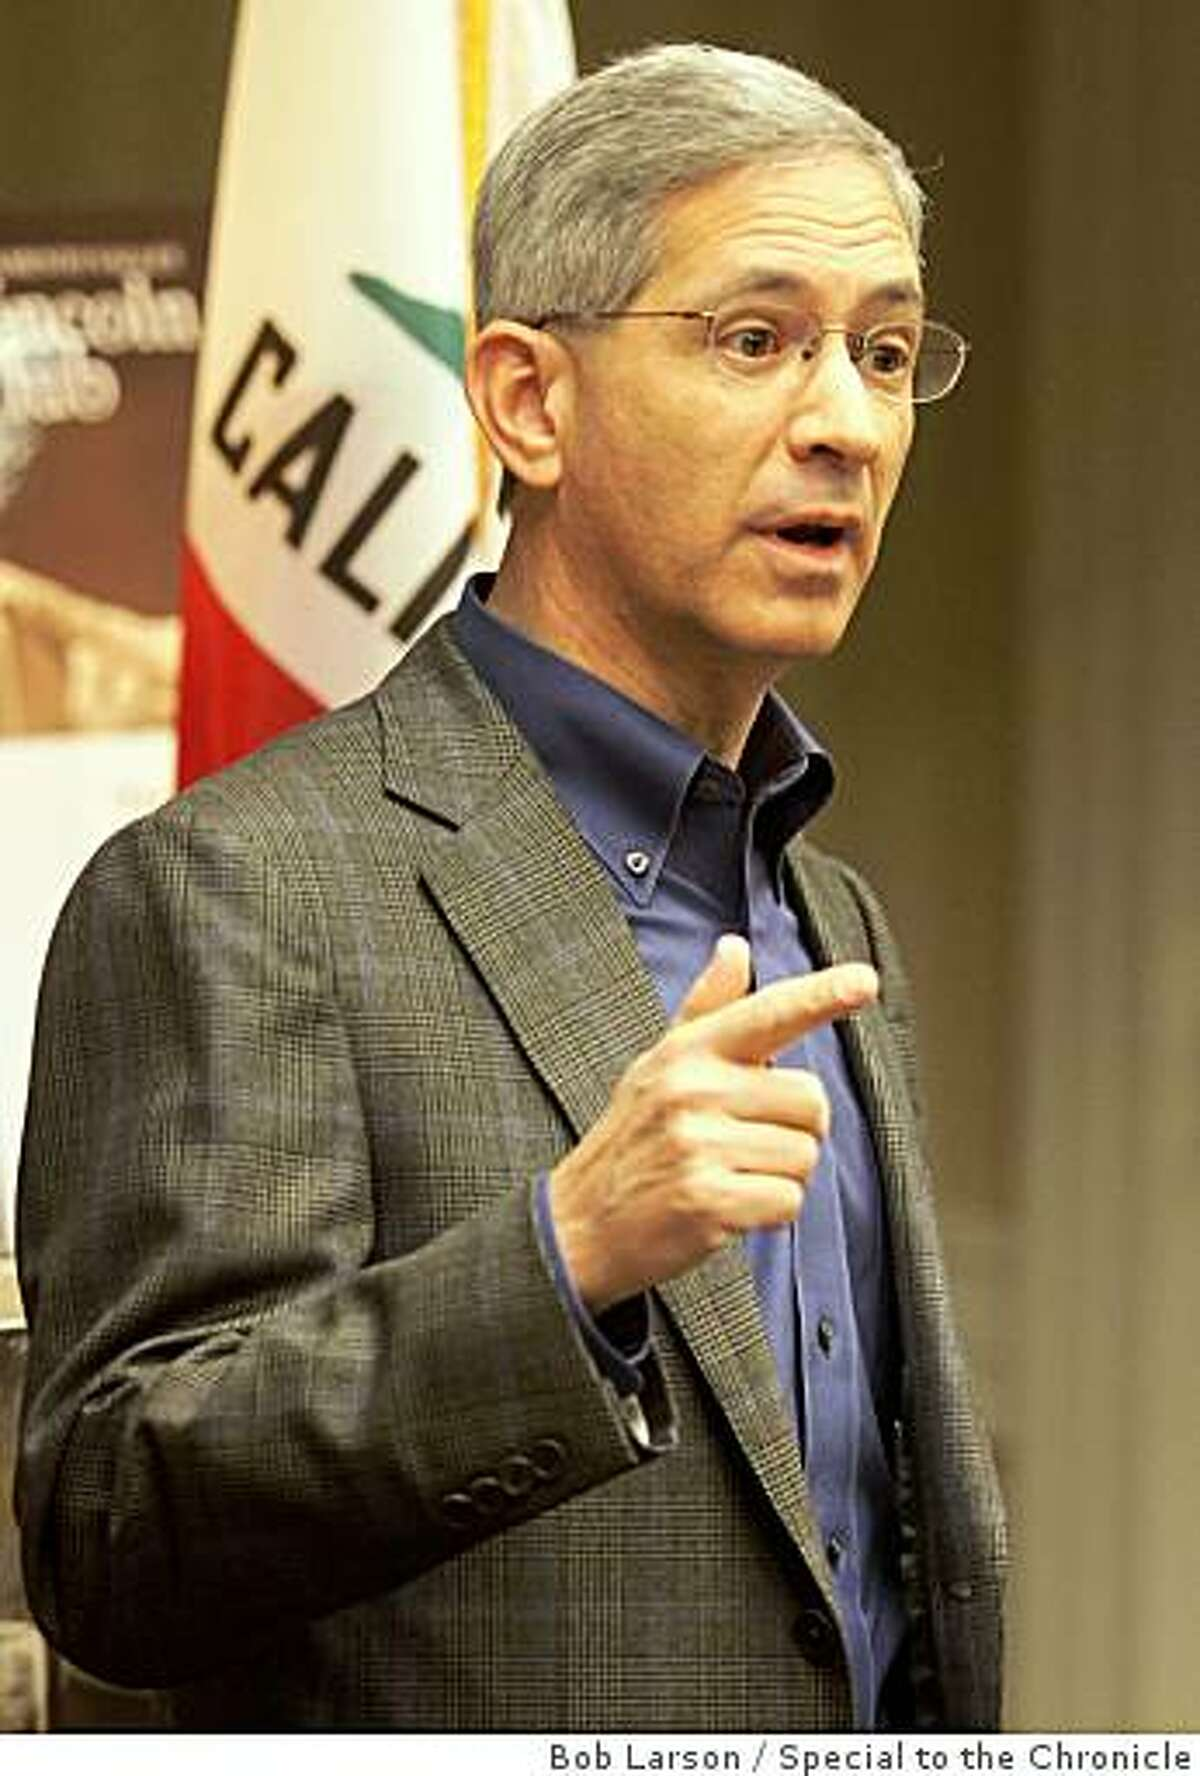 California Insurance Commissioner and Gubernatorial Candidate Steve Poizner speaks to a large crowd during the Lincoln Club breakfast during the California Republican Party Convention in Sacramento Calif., Saturday, February 21, 2009. (Special to the Chronicle/Bob Larson)